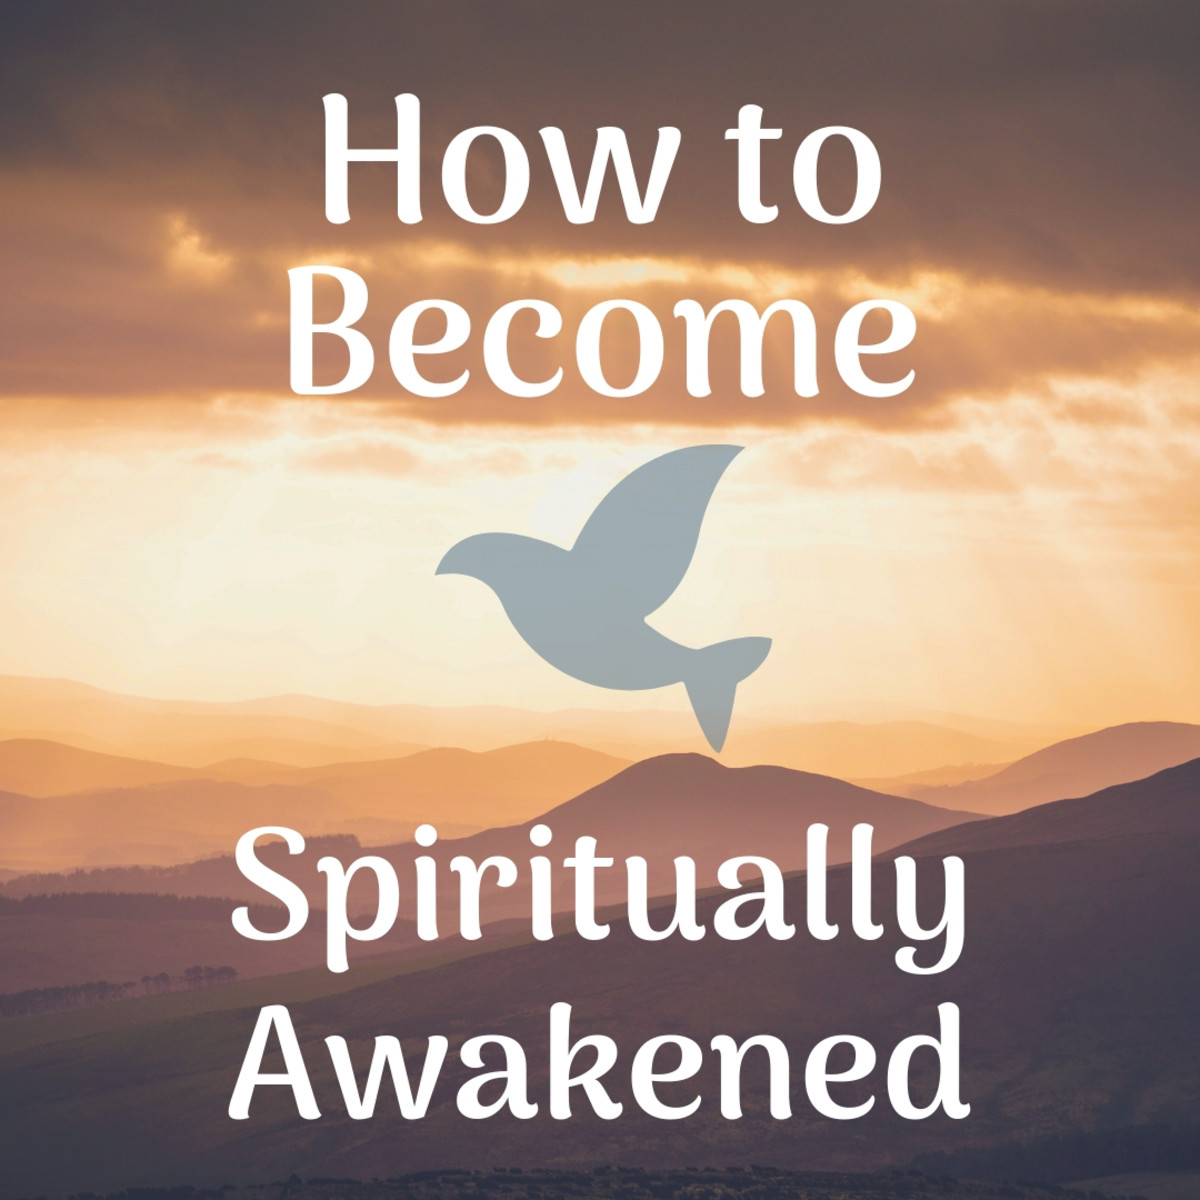 Spiritual Awakening and Characteristics of a Spiritually Awakened Person